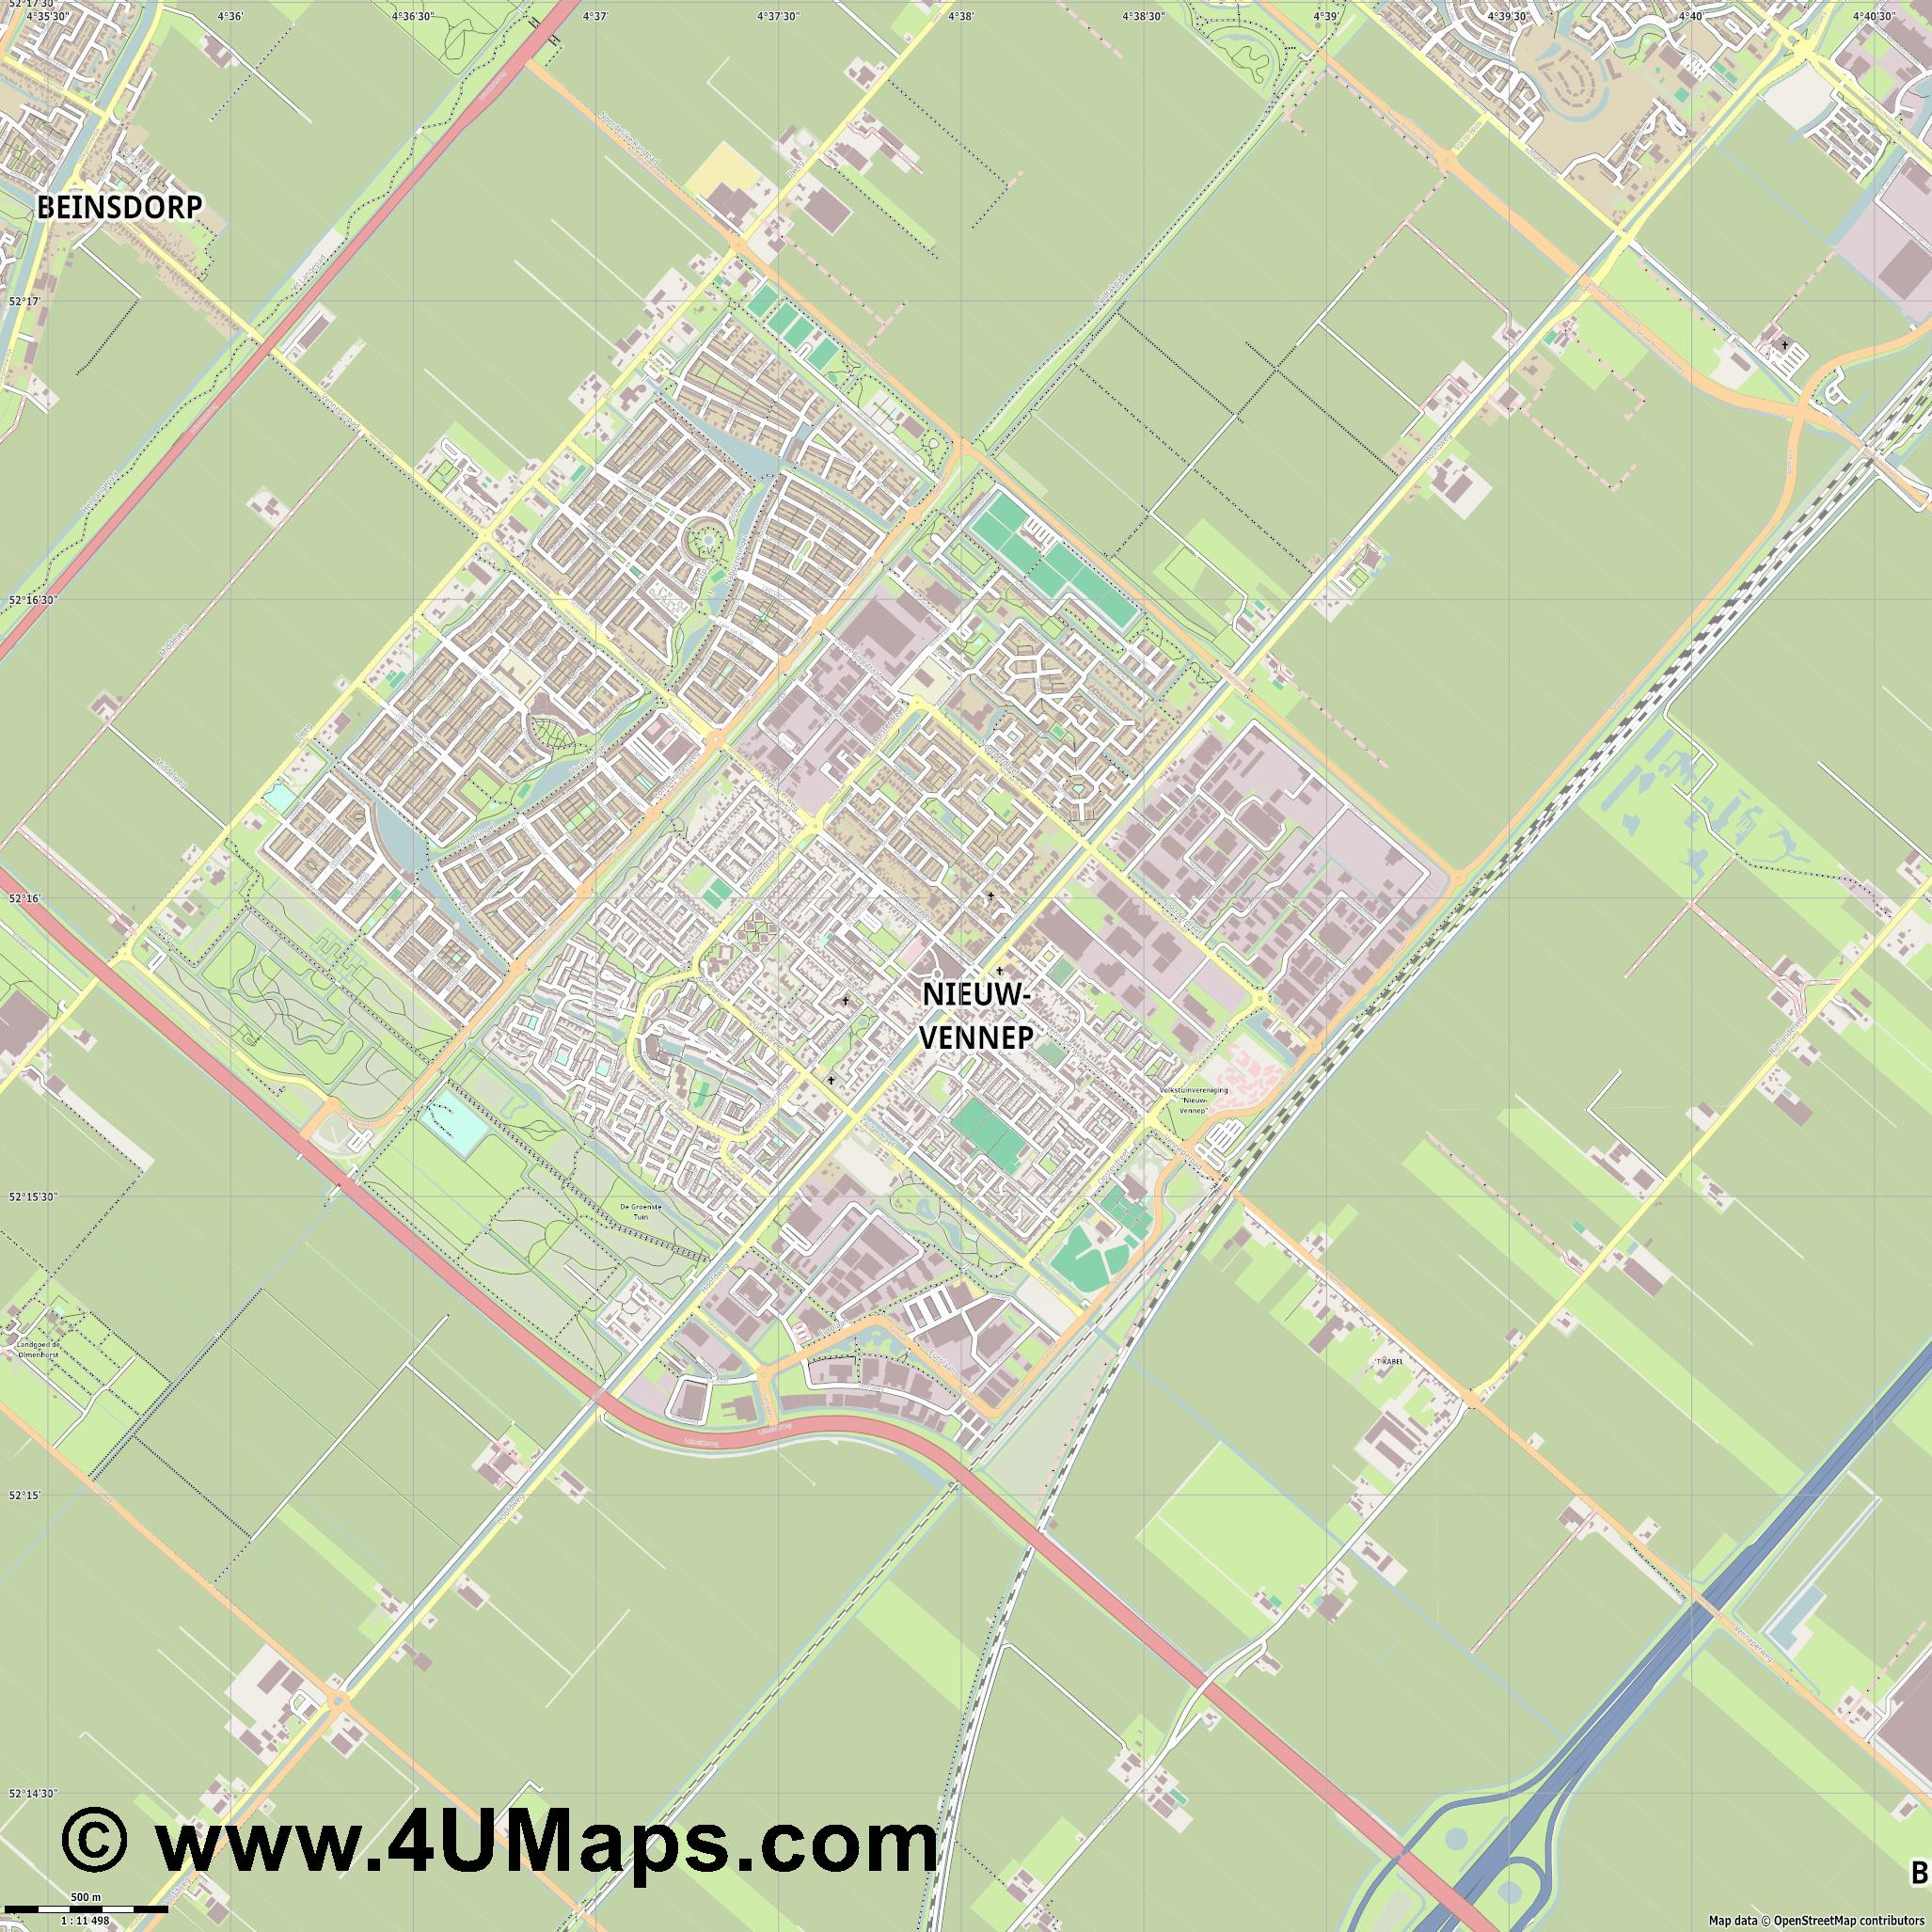 Nieuw Vennep  jpg ultra high detail preview vector city map